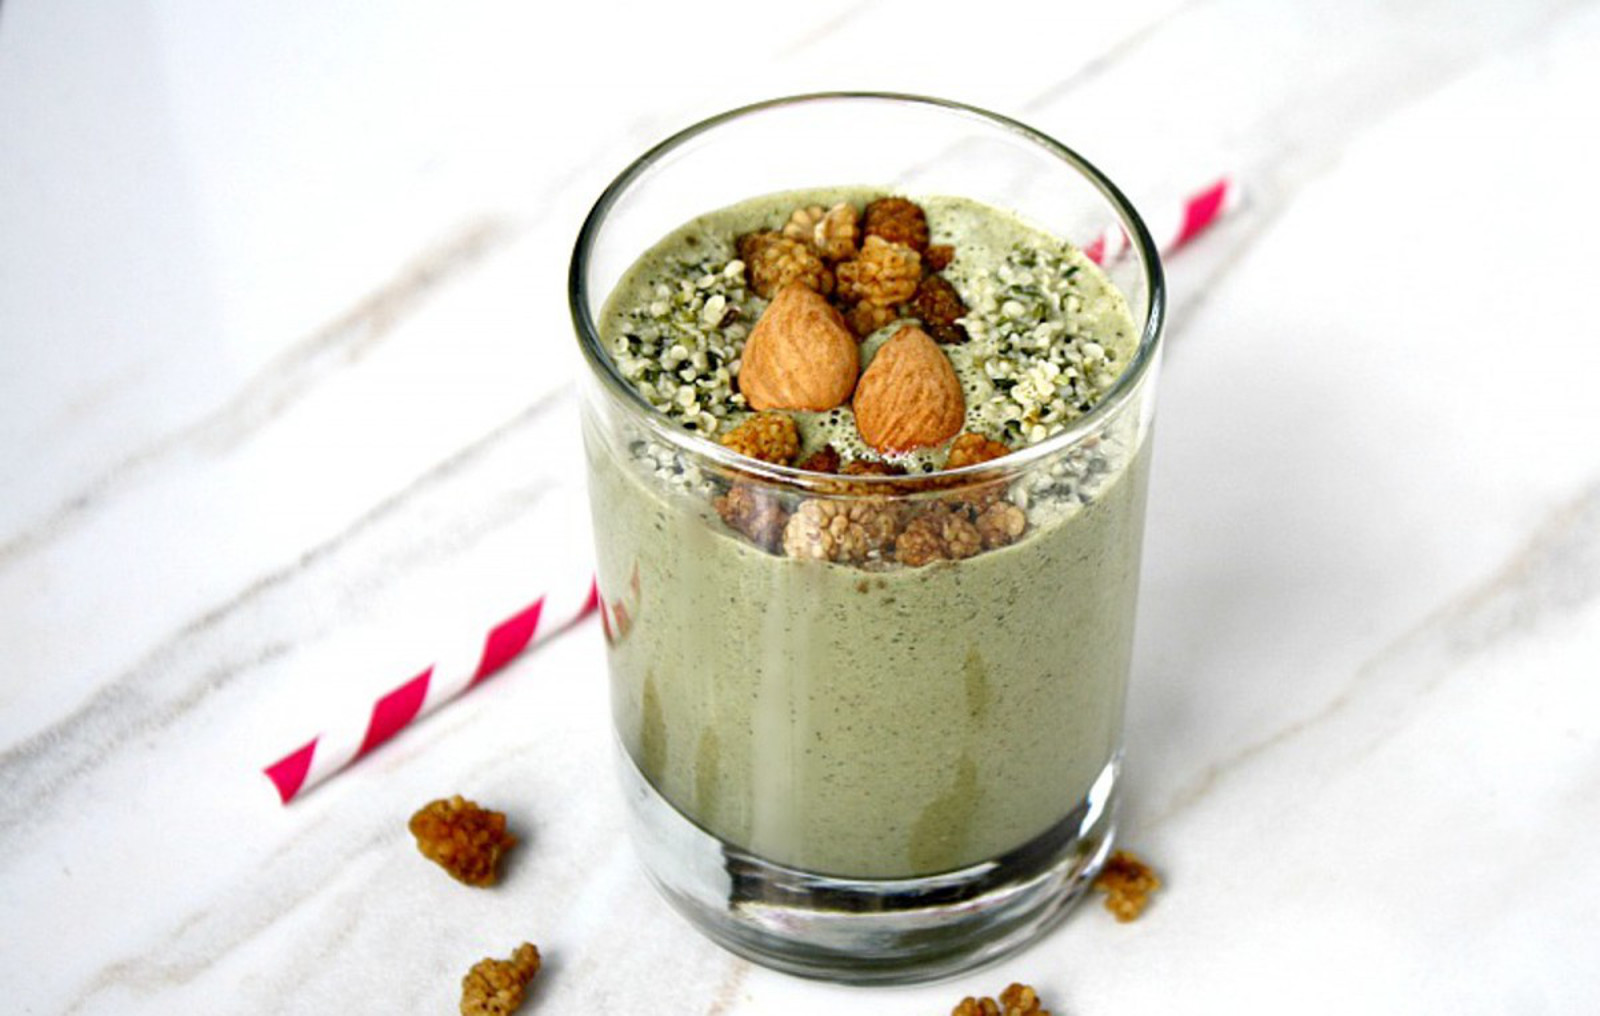 Best Tips to Create Maximum Flavor in Your Superfood Smoothies